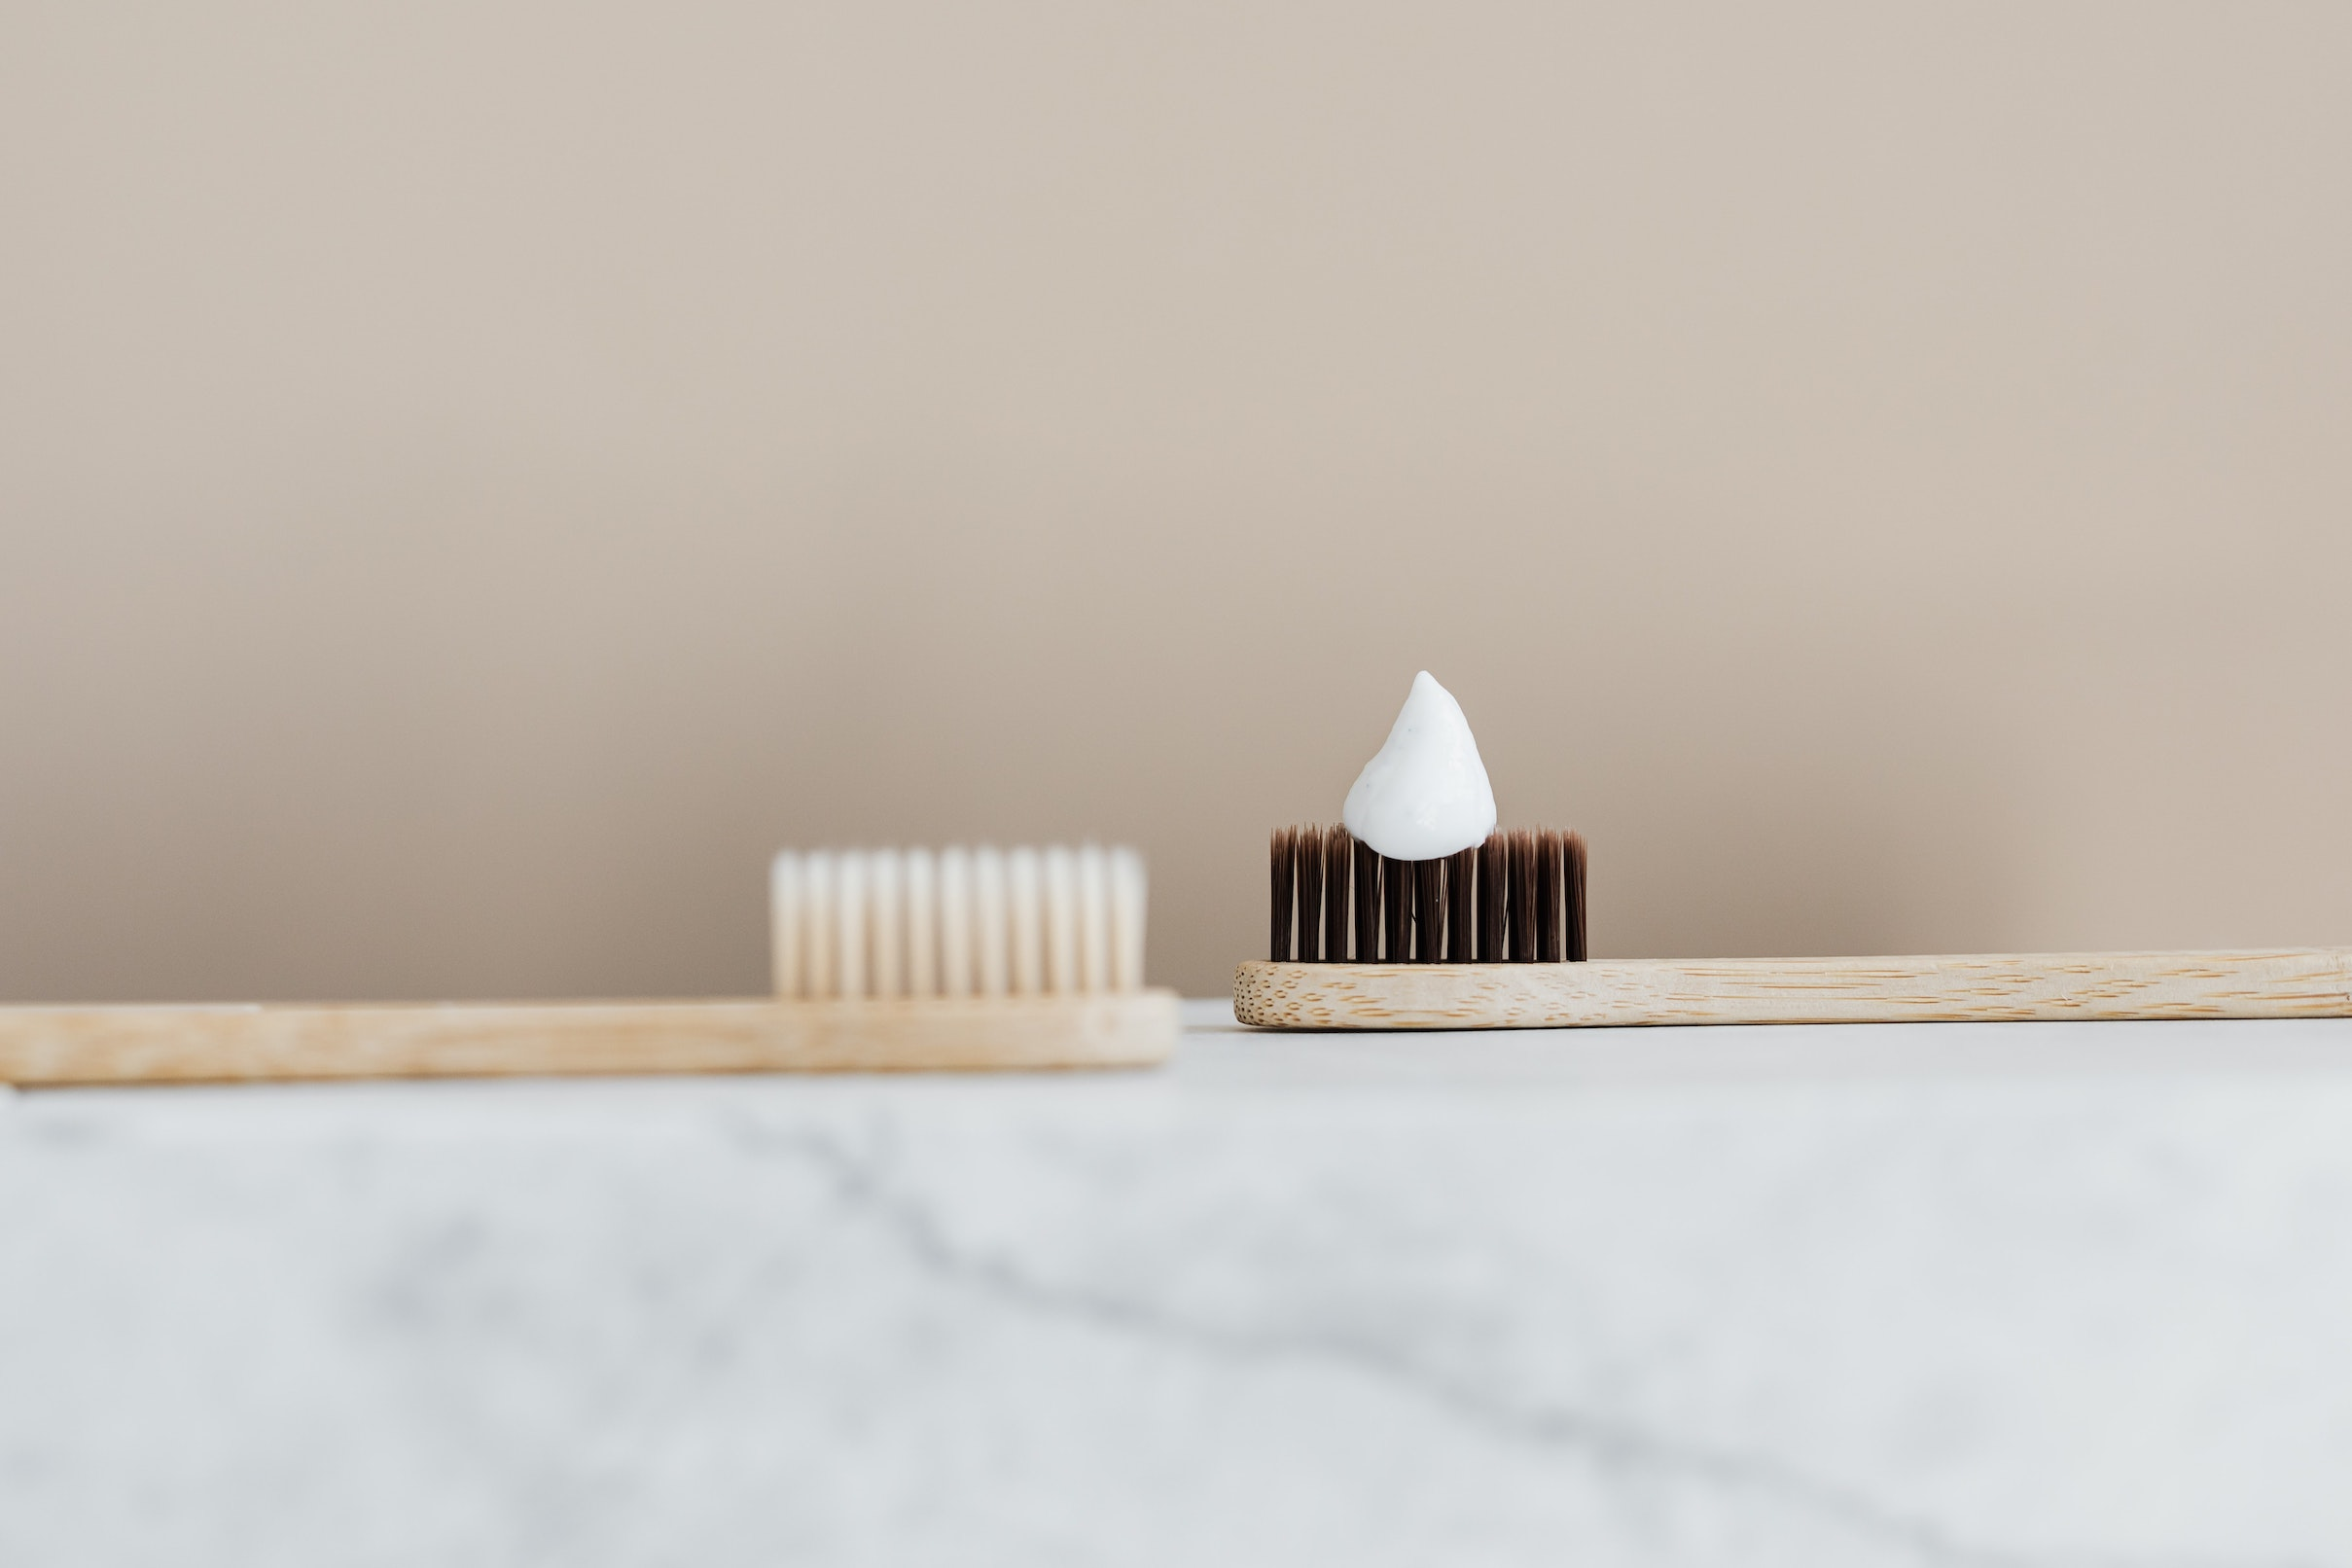 how to choose teeth whitening products